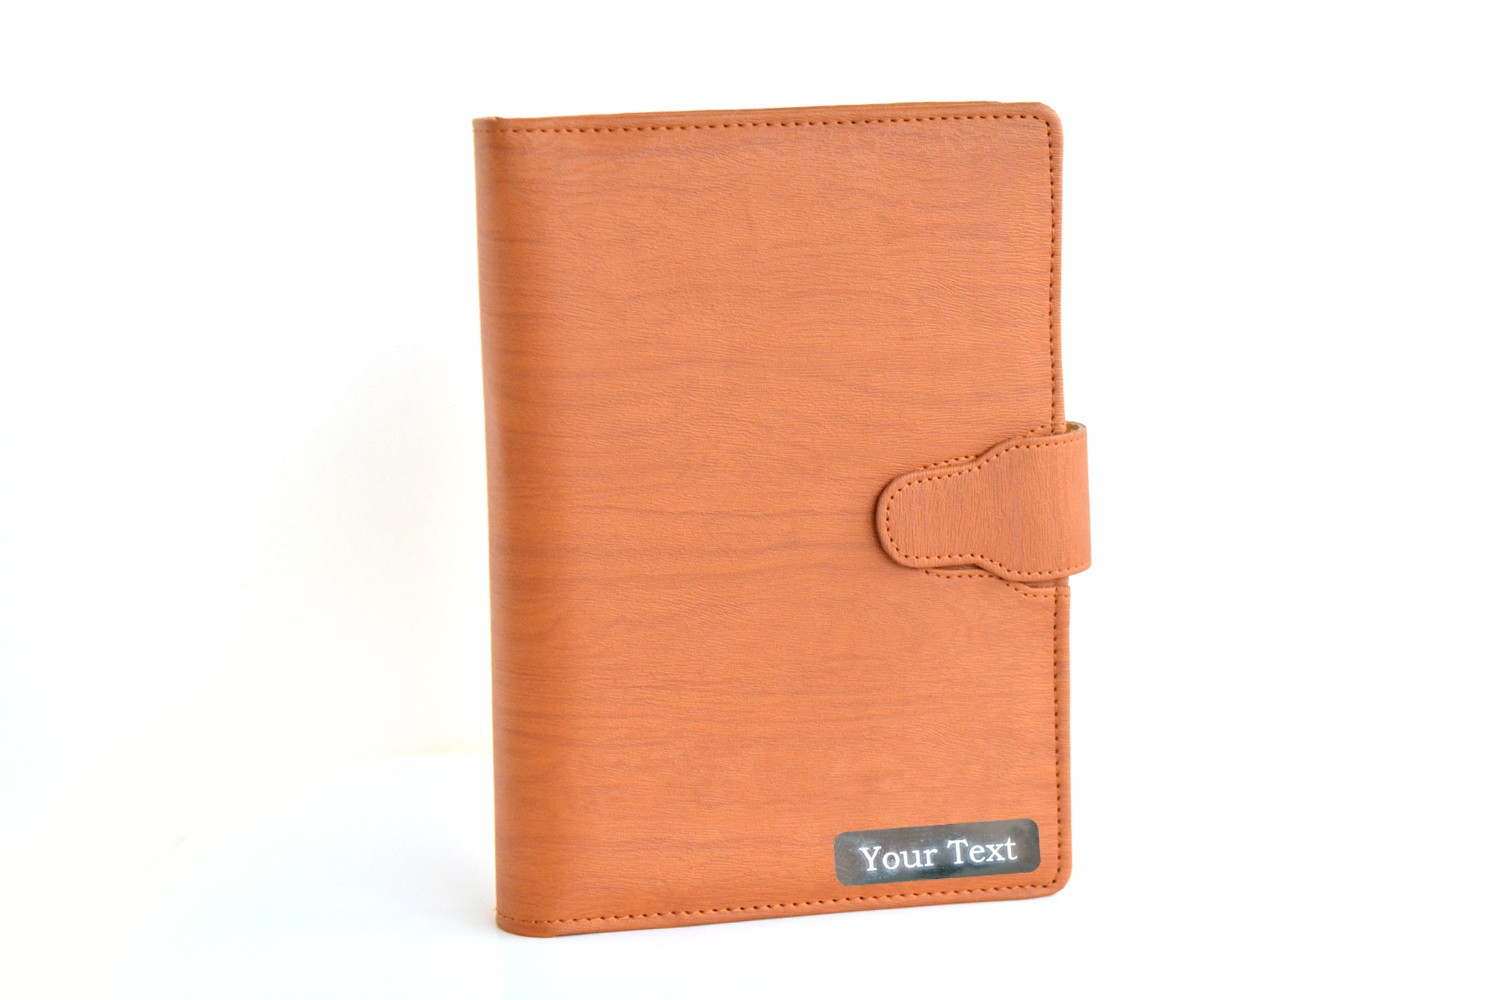 Personalised Leather Business Planner/Organiser - Tan